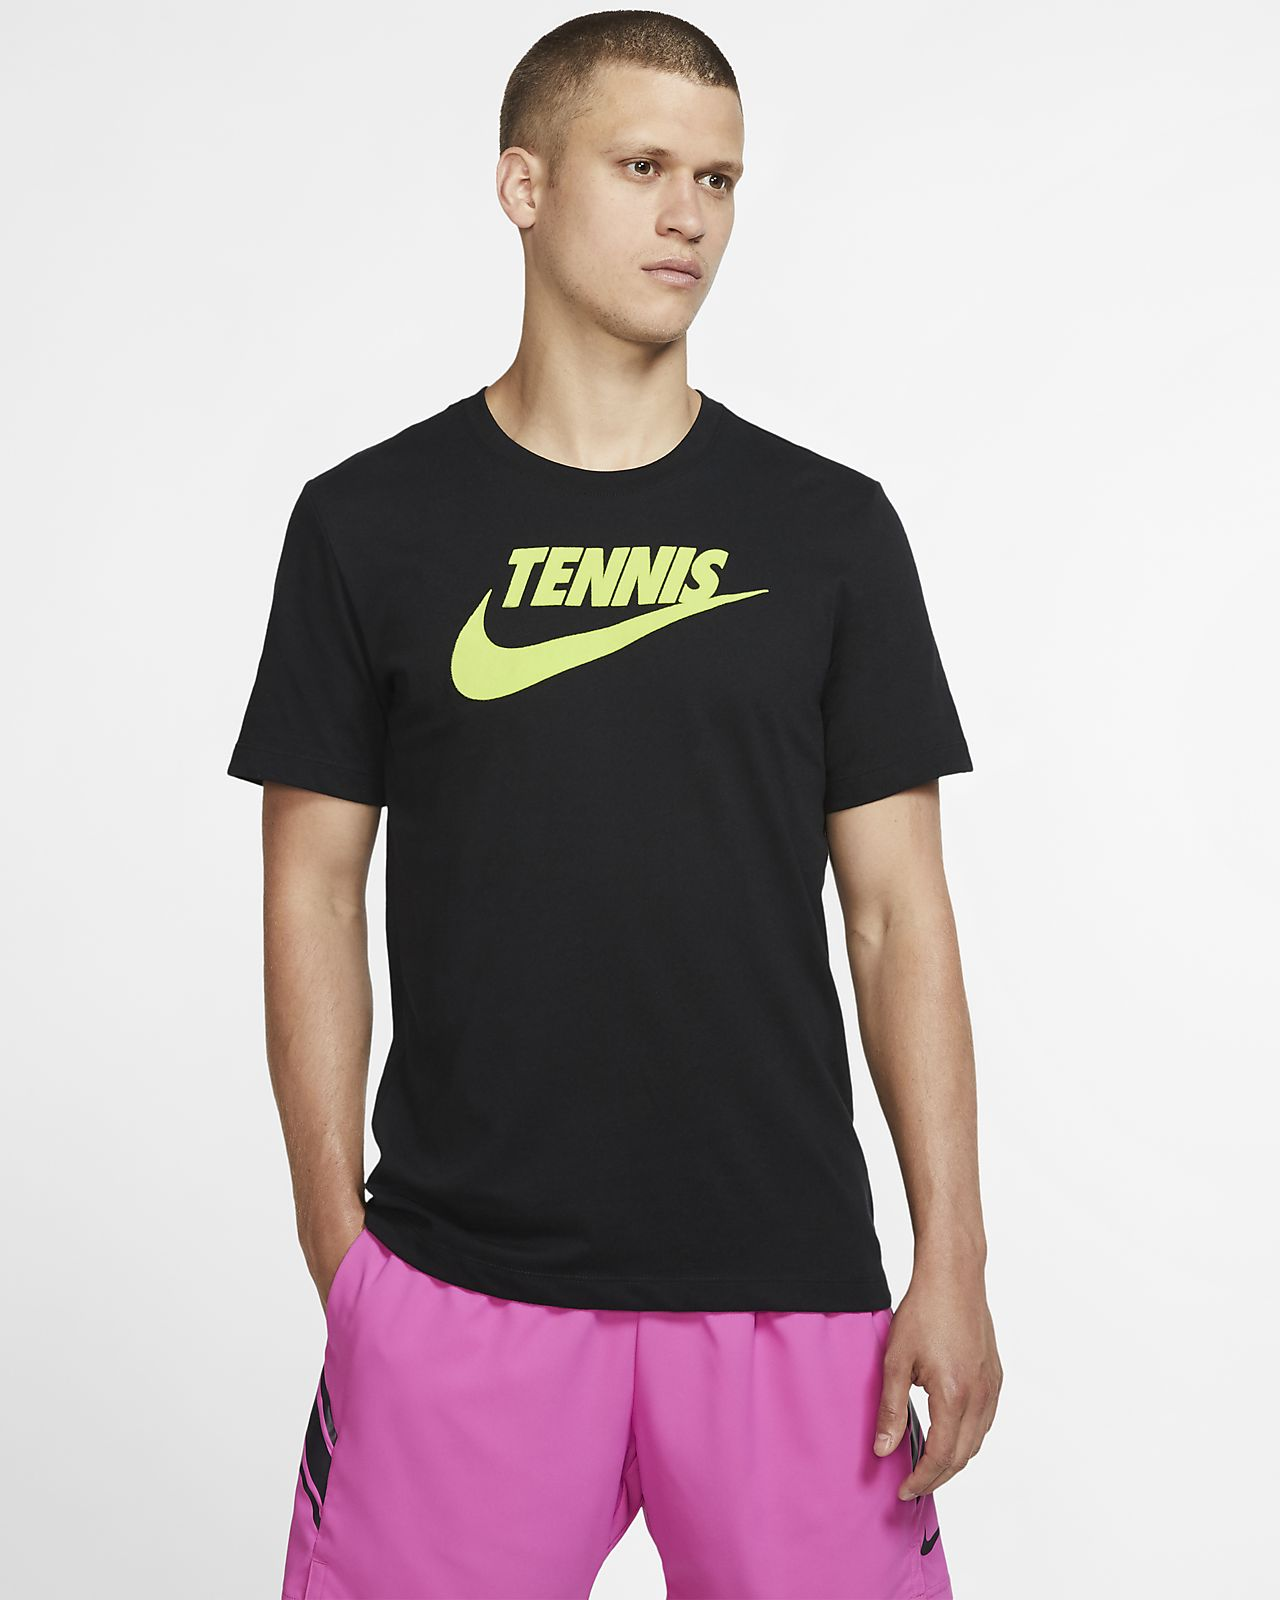 Tennis Tops & T Shirts. Nike DE